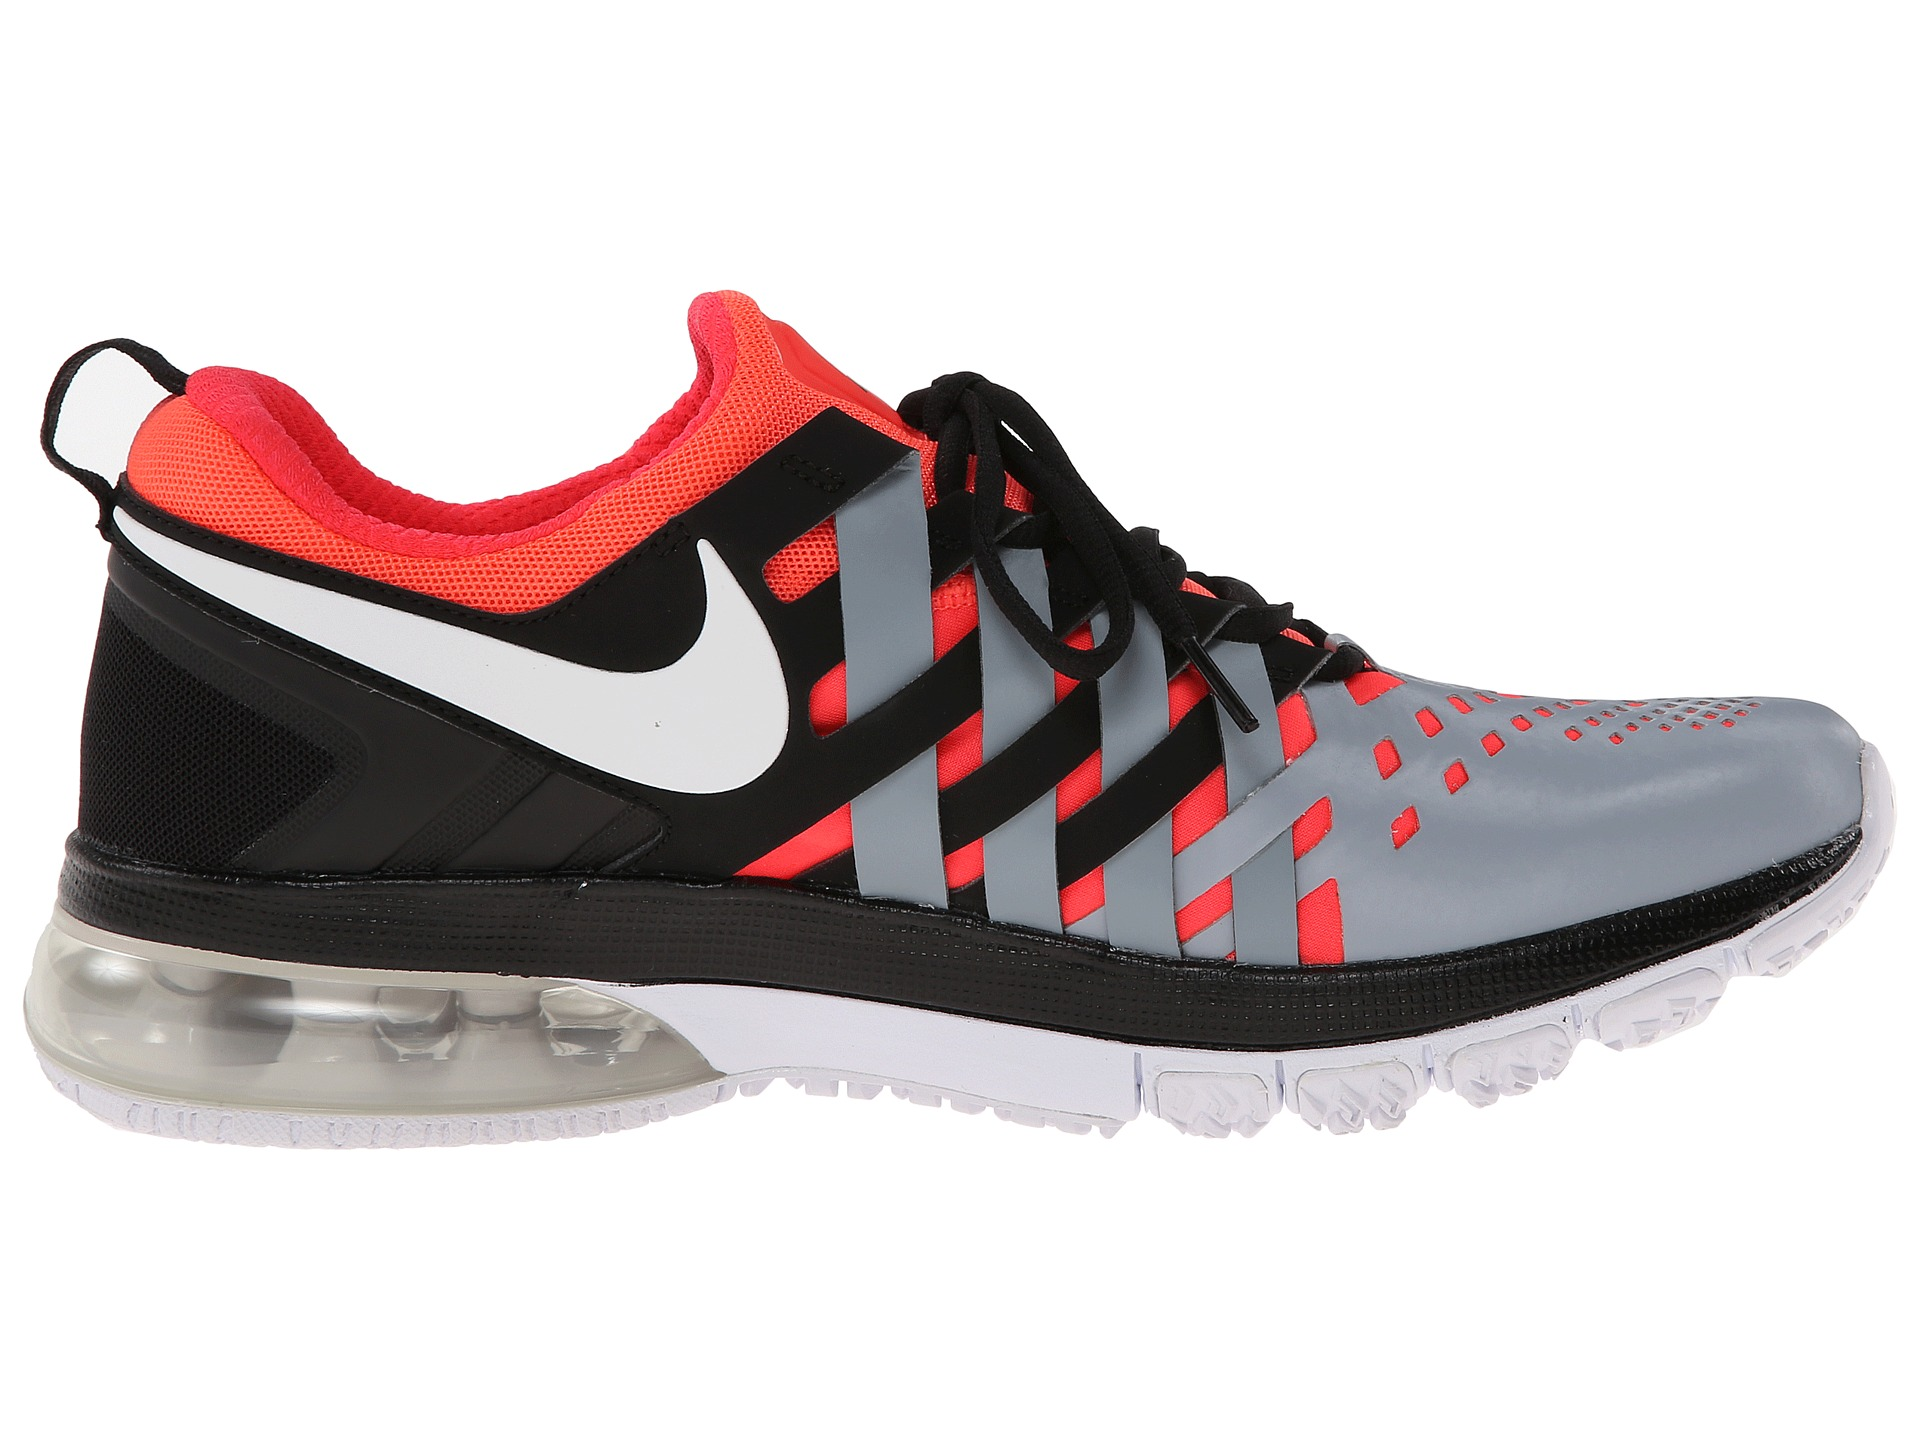 347af2b21e78 What Replaced Nike Fingertrap Max Shoes For Women Nike Free 4.0 ...